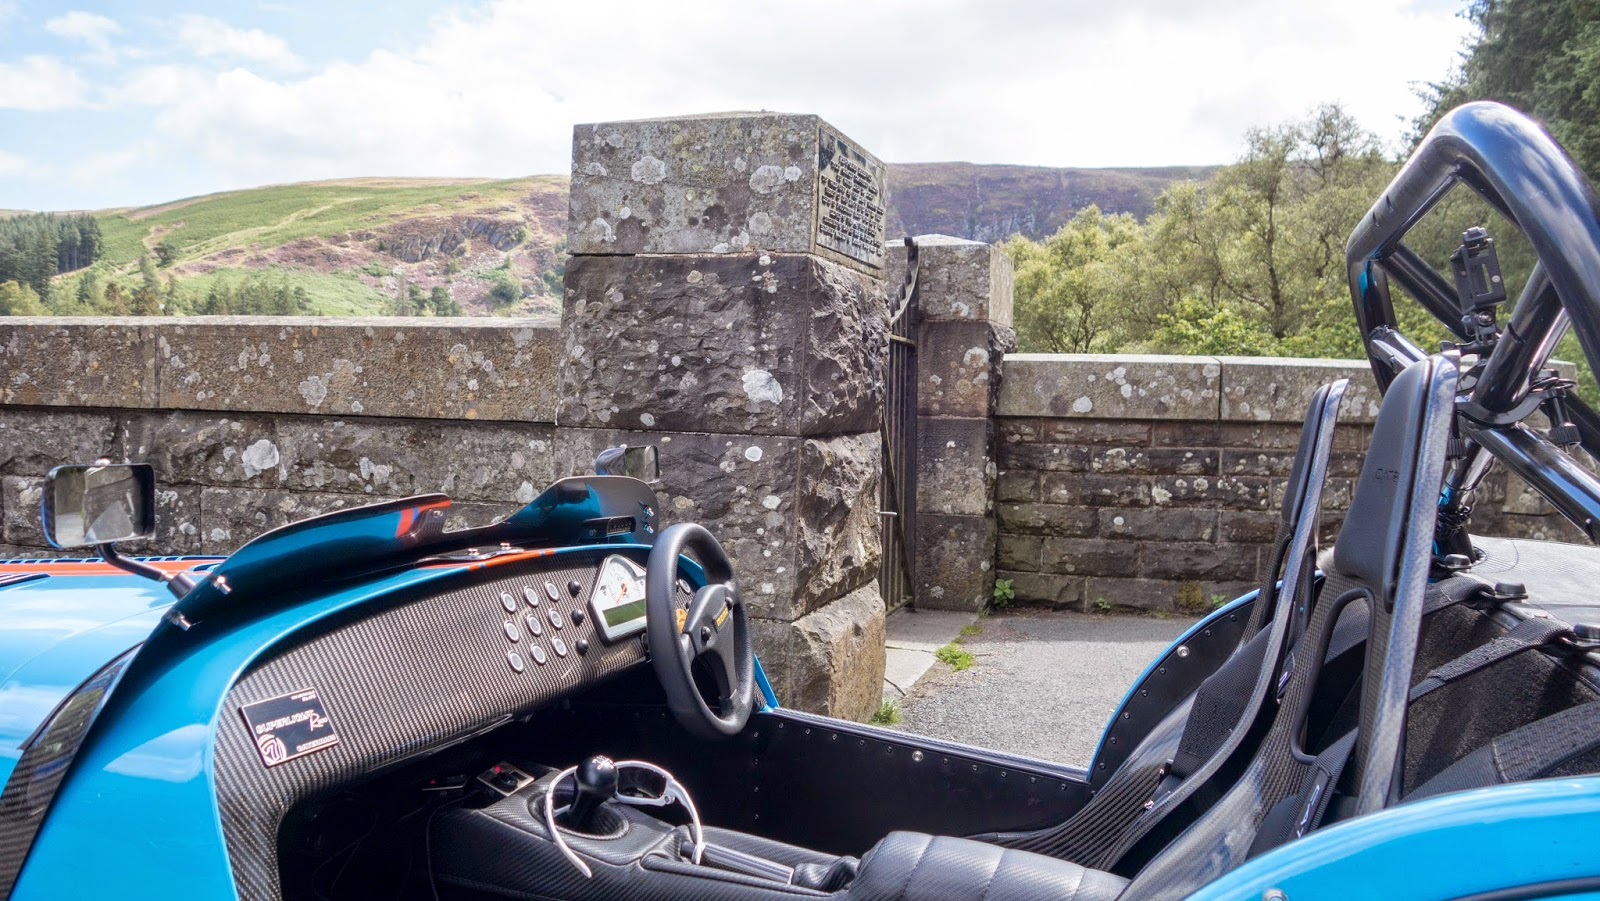 Caterham R500 interior shot at the Pen Y Garreg Dam